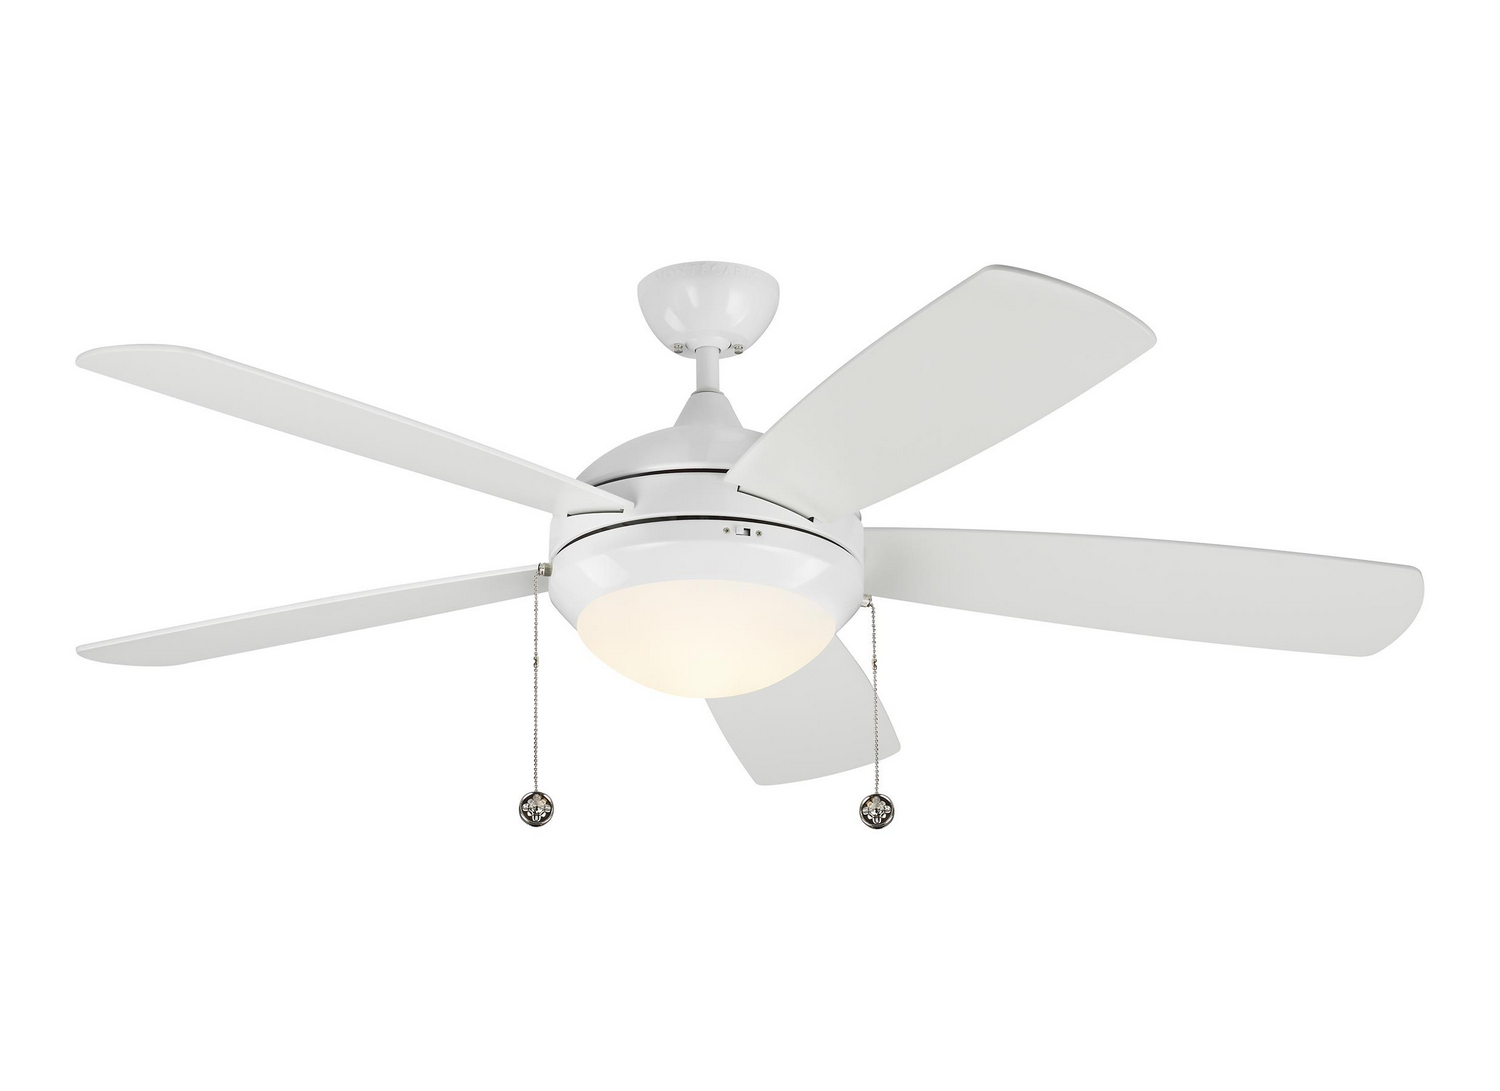 52 inchCeiling Fan from the Discus Classic collection by Monte Carlo 5DIC52WHD V1